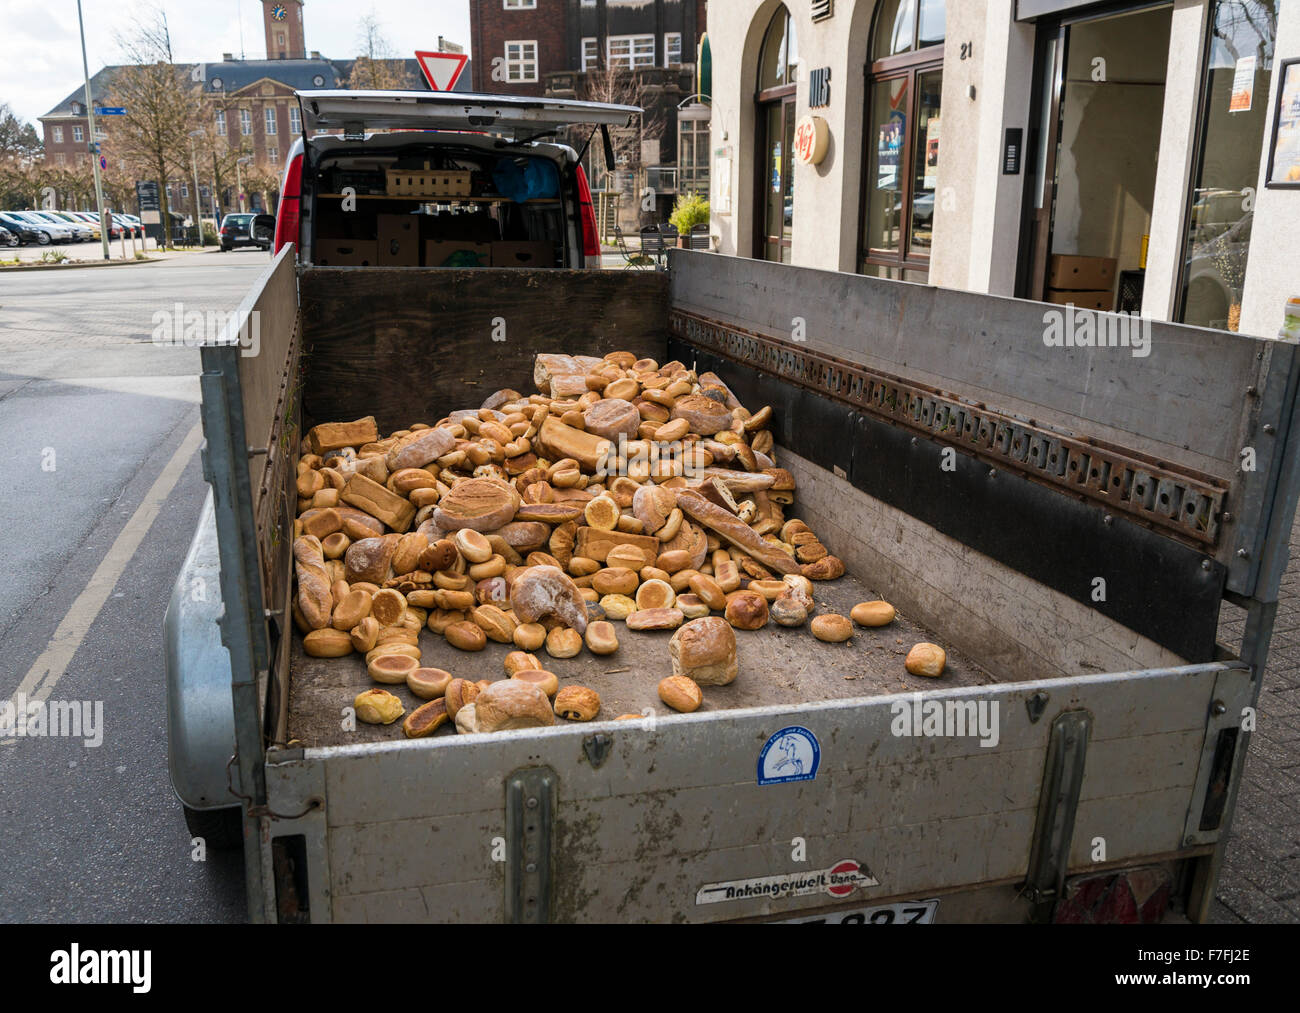 Loaves of bread and bread rolls from the previous day lie on a trailer in front of a bakery, waiting for disposal. - Stock Image